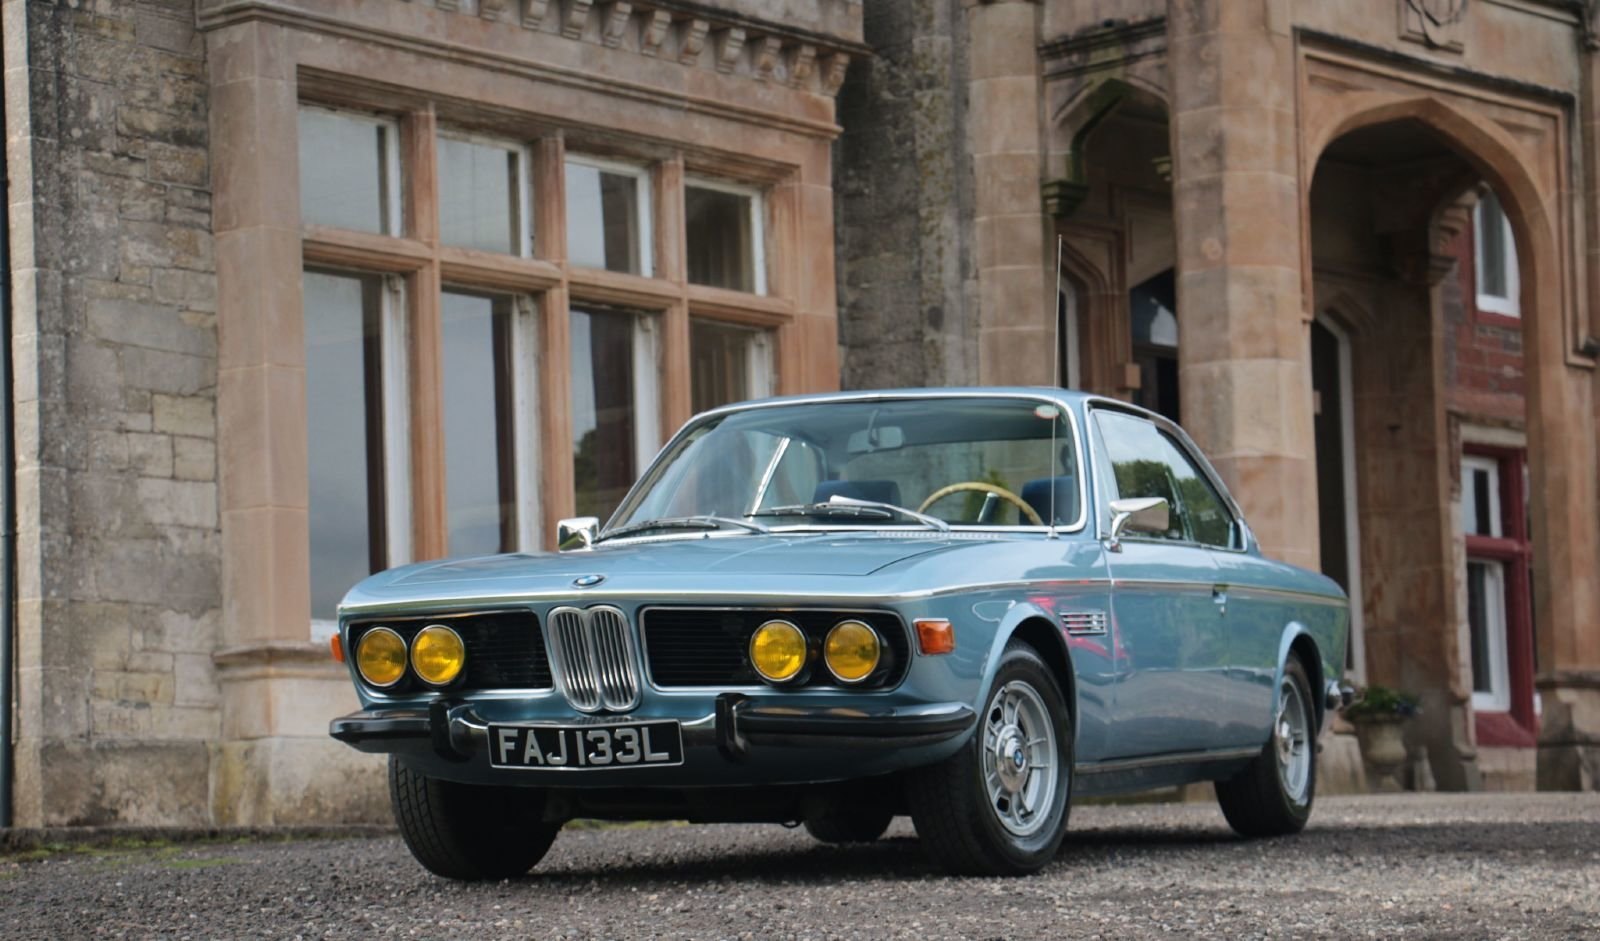 1971 E9 bmw 3.0 cs coupe lhd csl csi For Sale (picture 1 of 6)